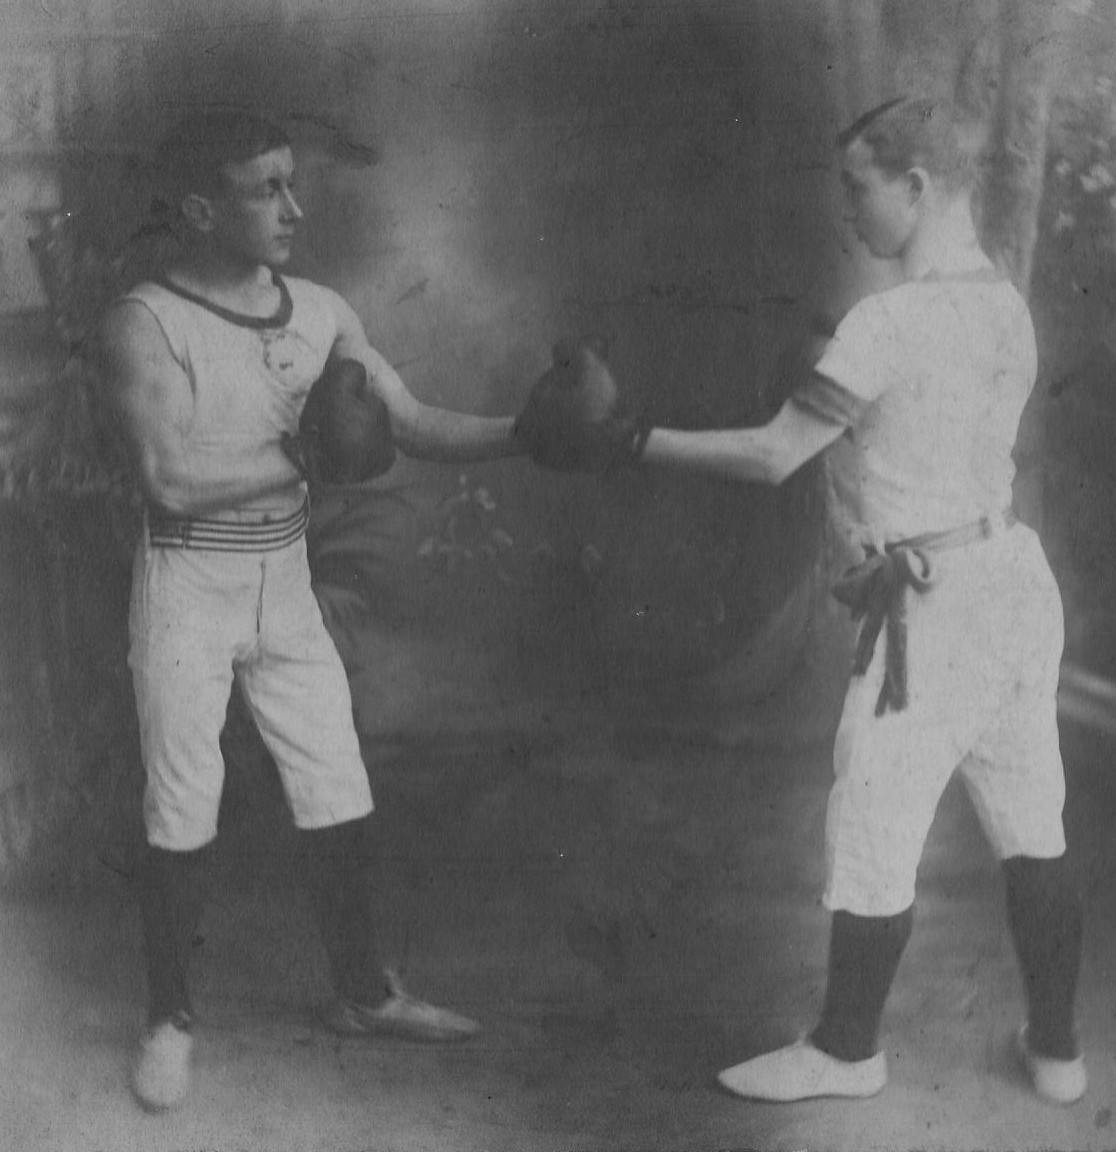 Boxing at Salford Lads Club in the early 1900s